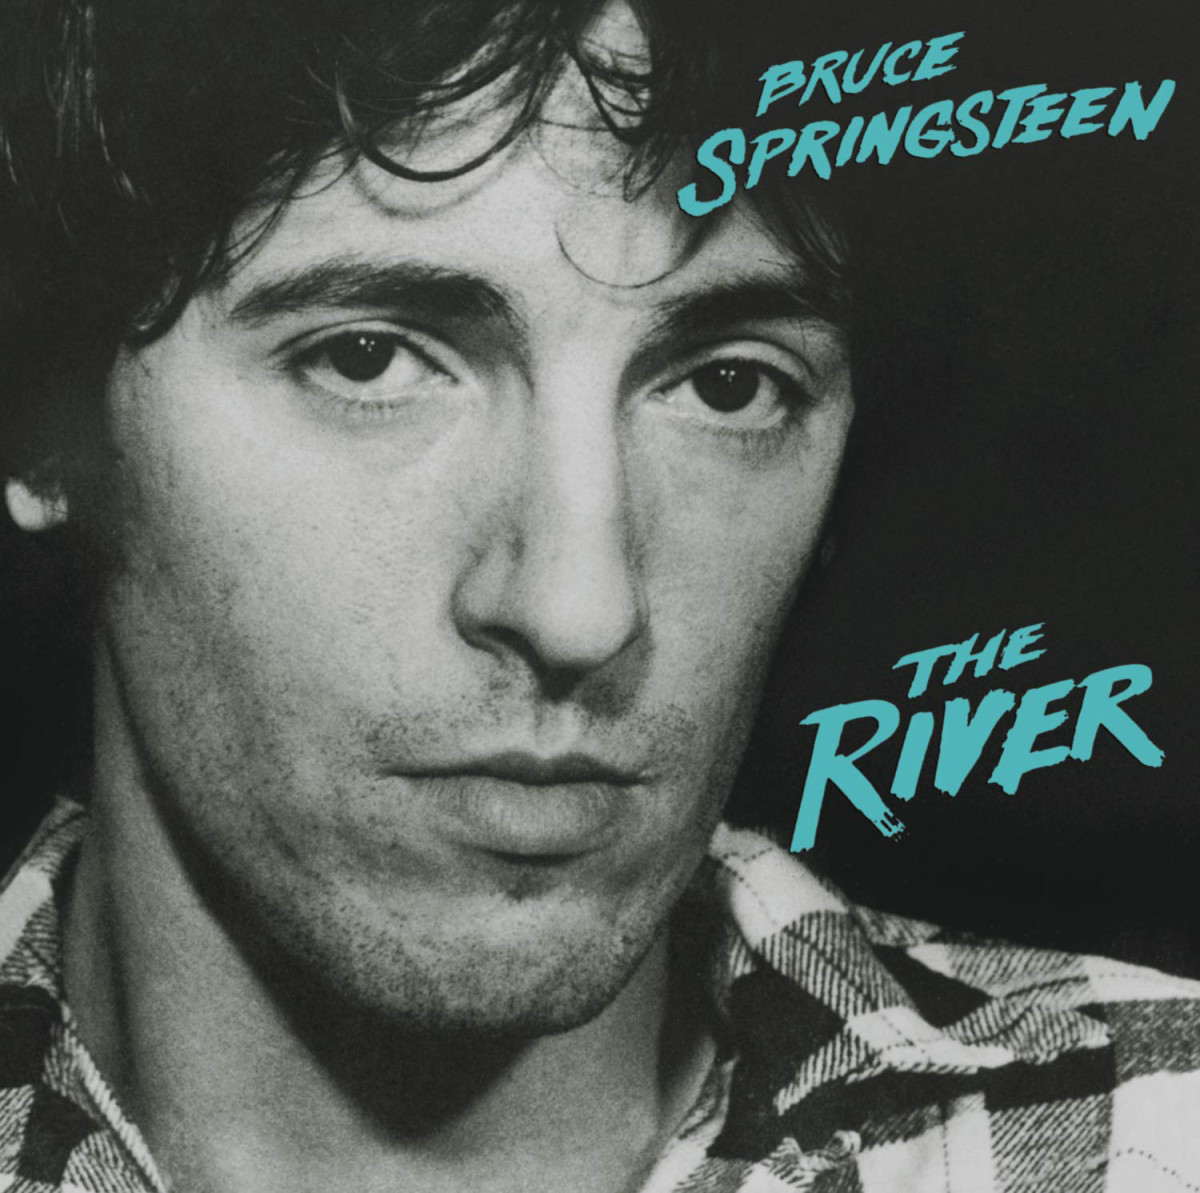 Bruce Springsteen, The River